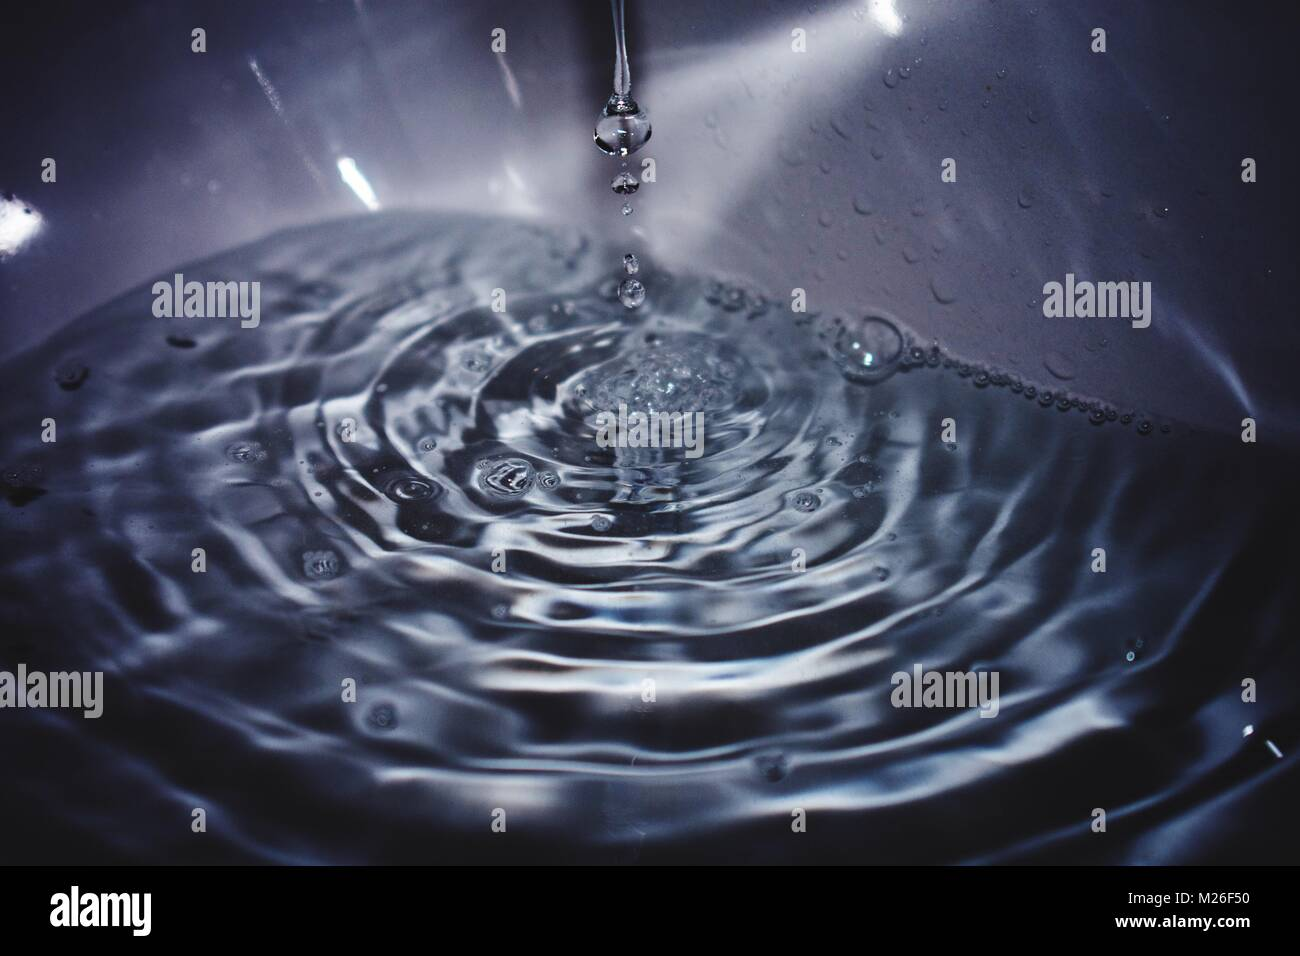 Stop Motion Picture Of Water Running Into A White Sink